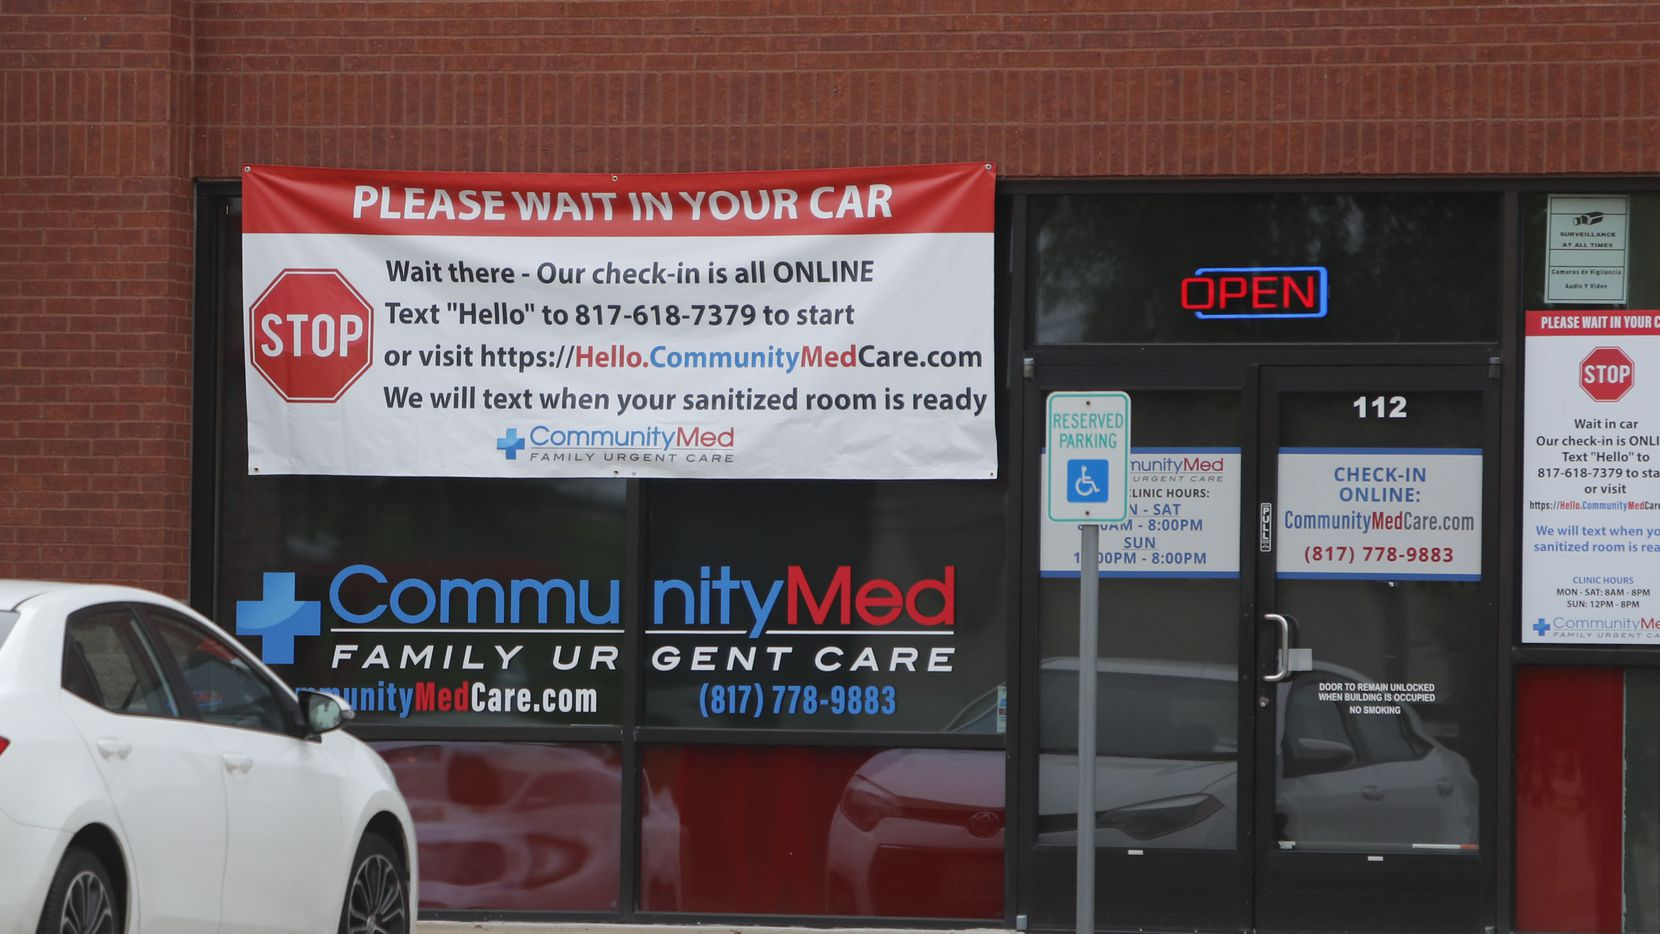 A car sits outside an urgent care facility in Arlington, Texas, Monday, March 23, 2020. In response to the COVID-19 outbreak, CommunityMed Urgent Care implemented a virtual waiting room for their medical clinics where patients can social distance and wait in their cars before heading into an exam room.